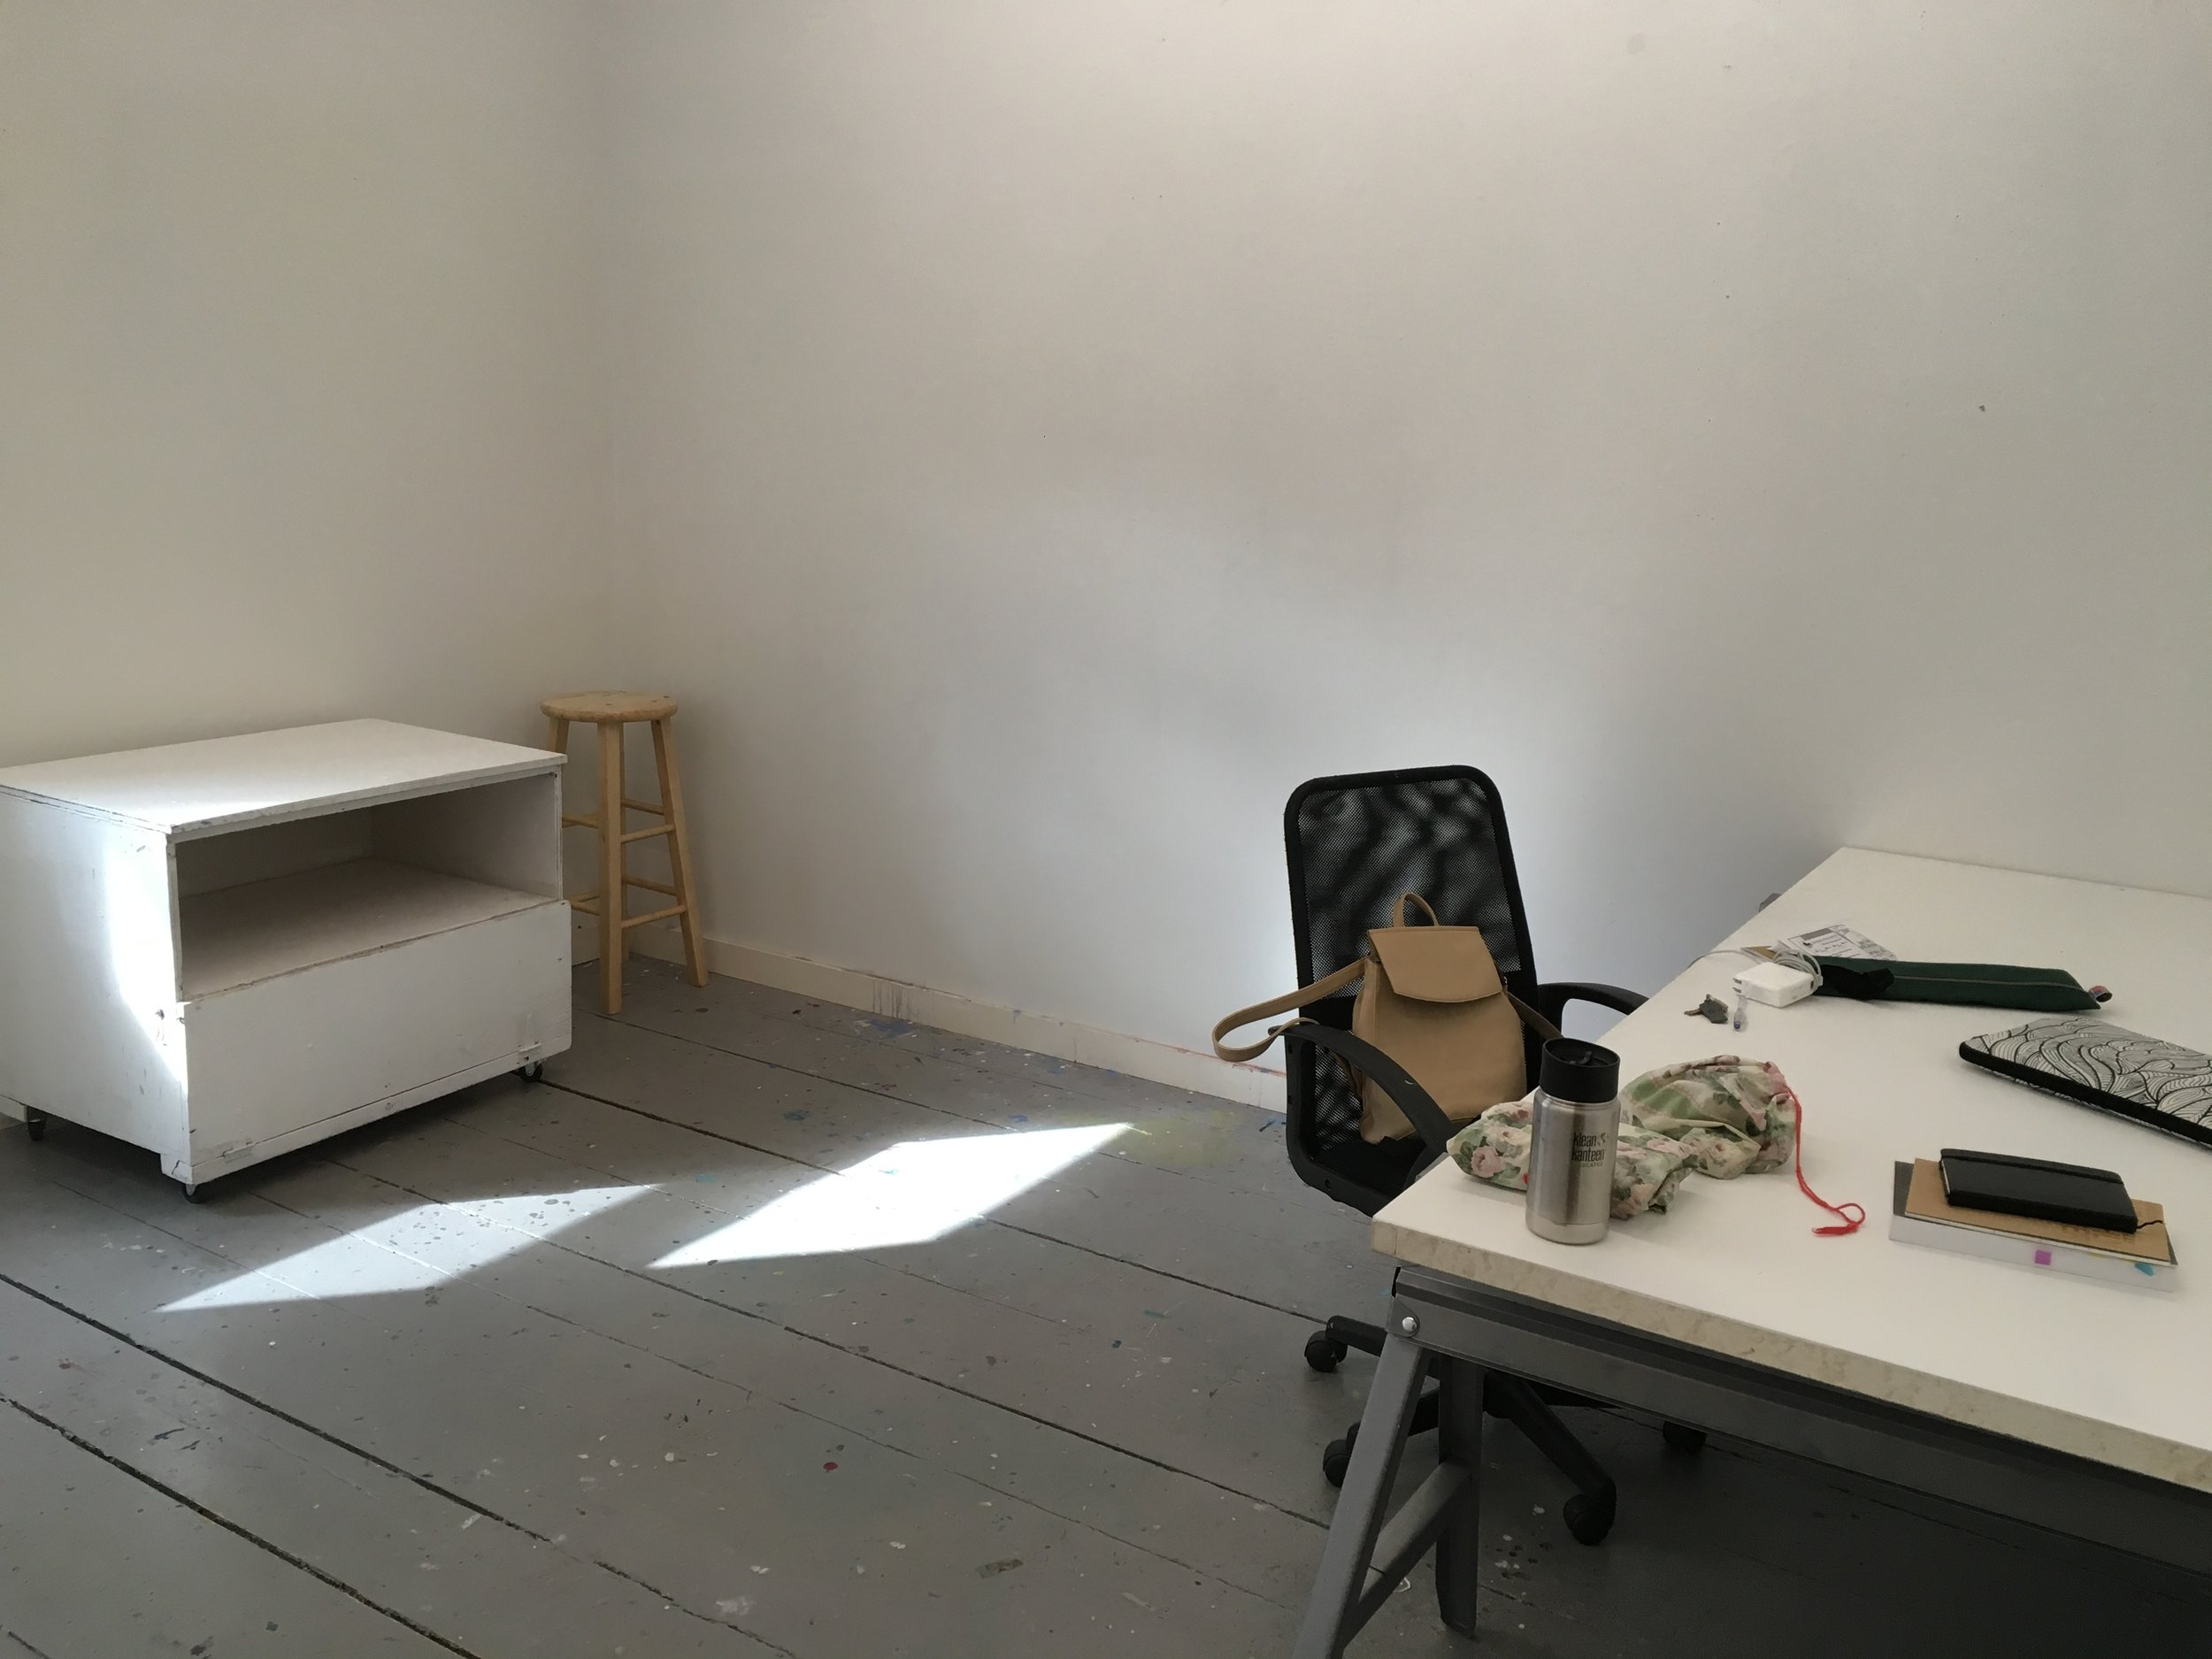 Photo of the studio before the work began.